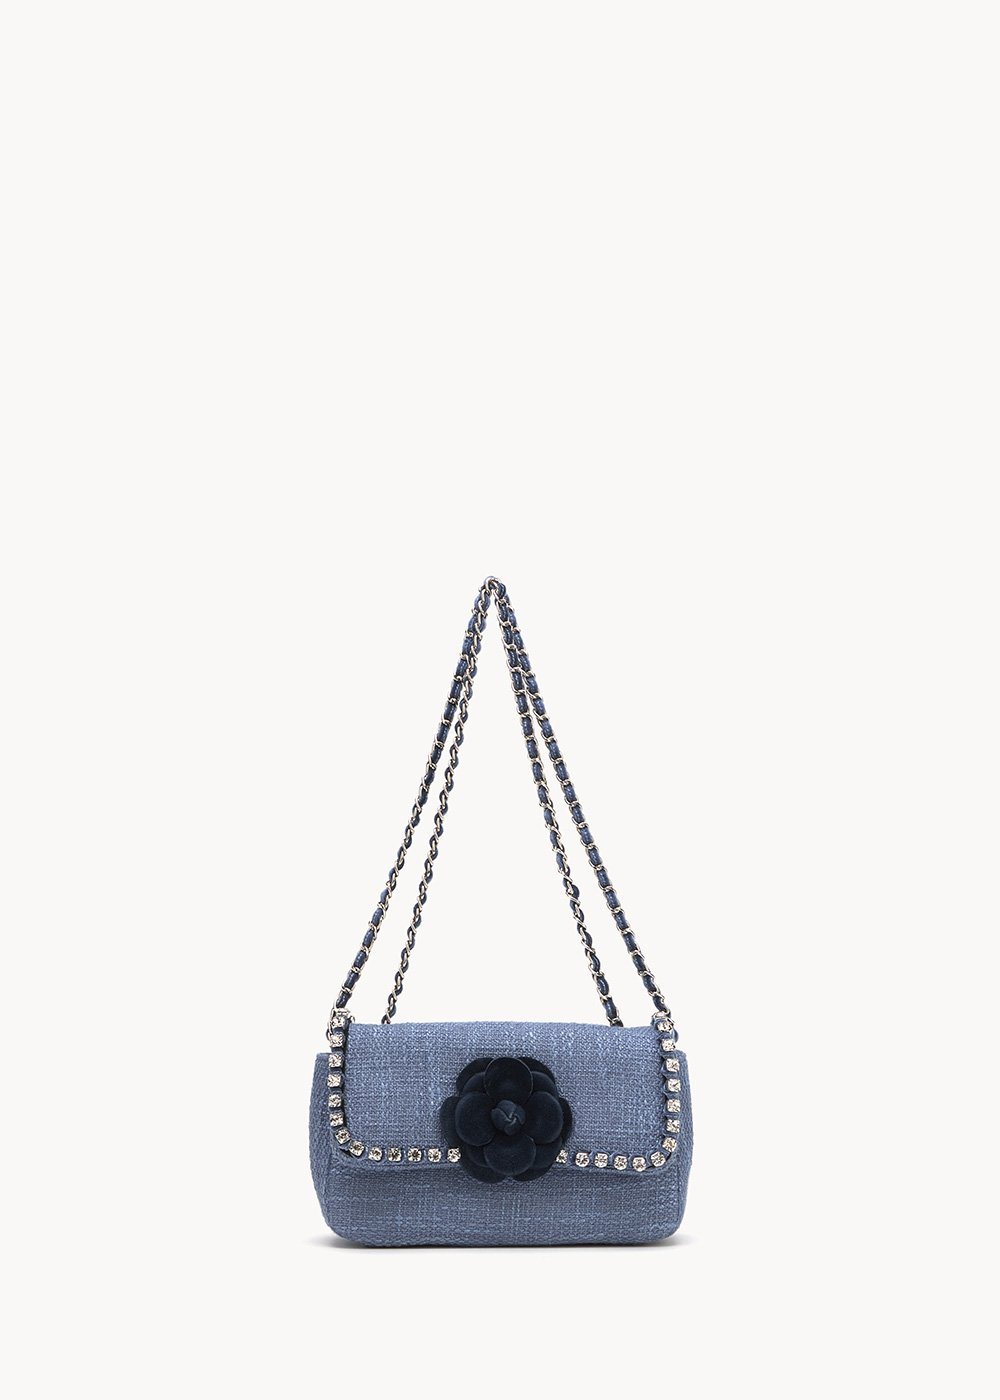 Bally clutch bag with rhinestones and shoulder strap